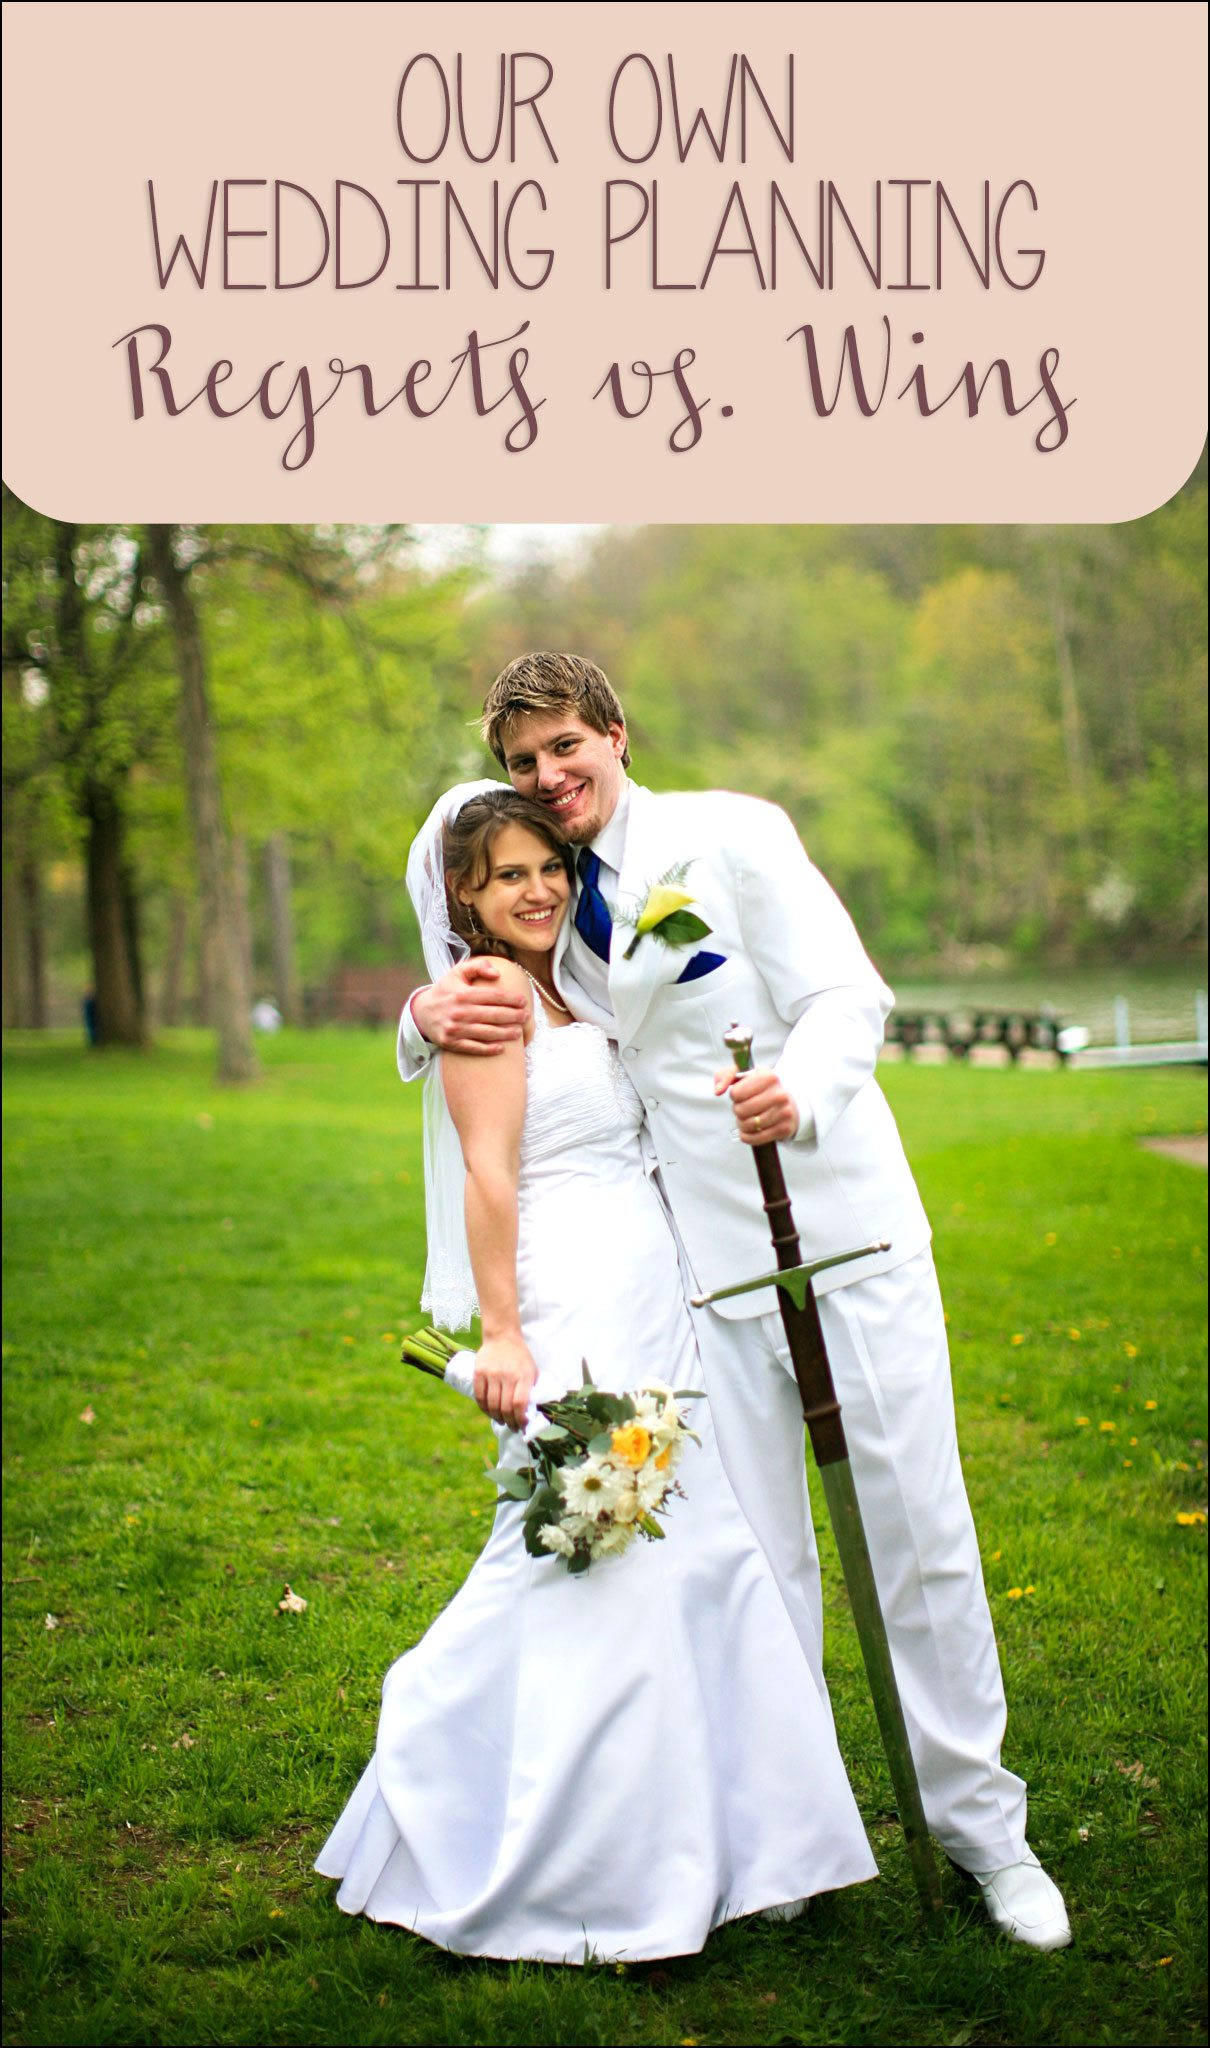 The ultimate wedding planning timeline! - Love Our Wedding |Planning Our Wedding